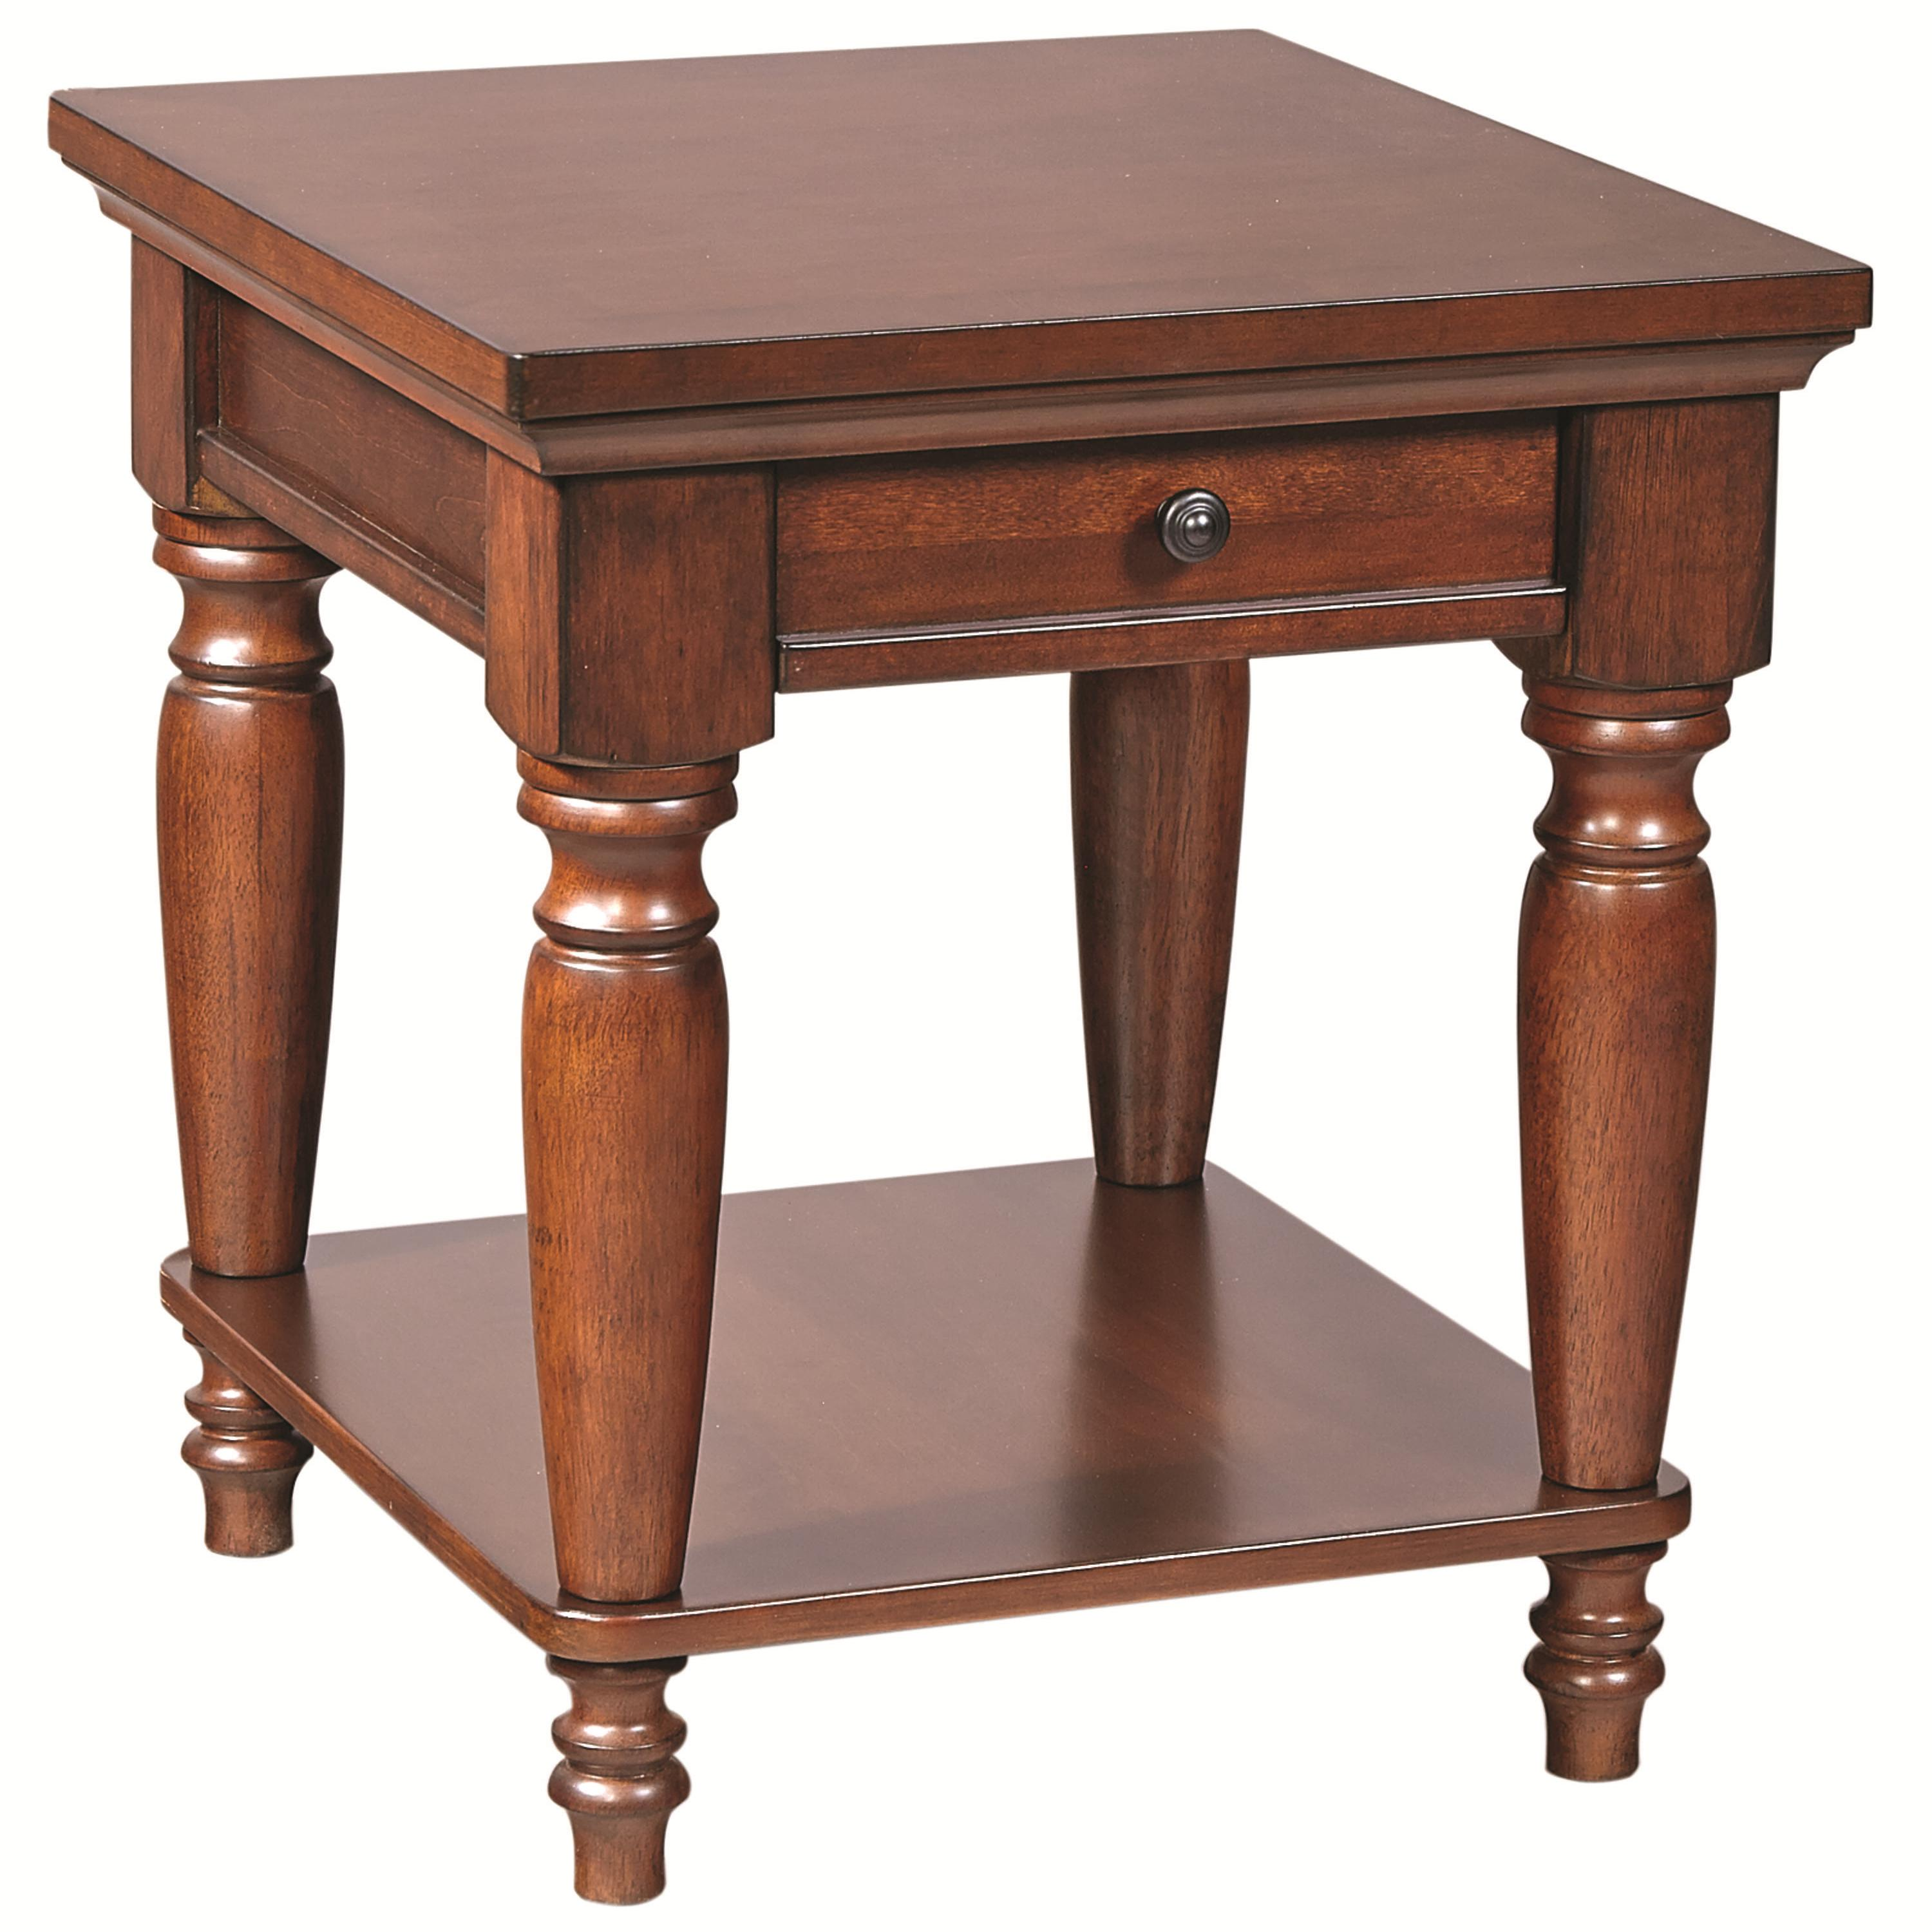 Aspenhome Cambridge End Table - Item Number: ICB-9140-BCH